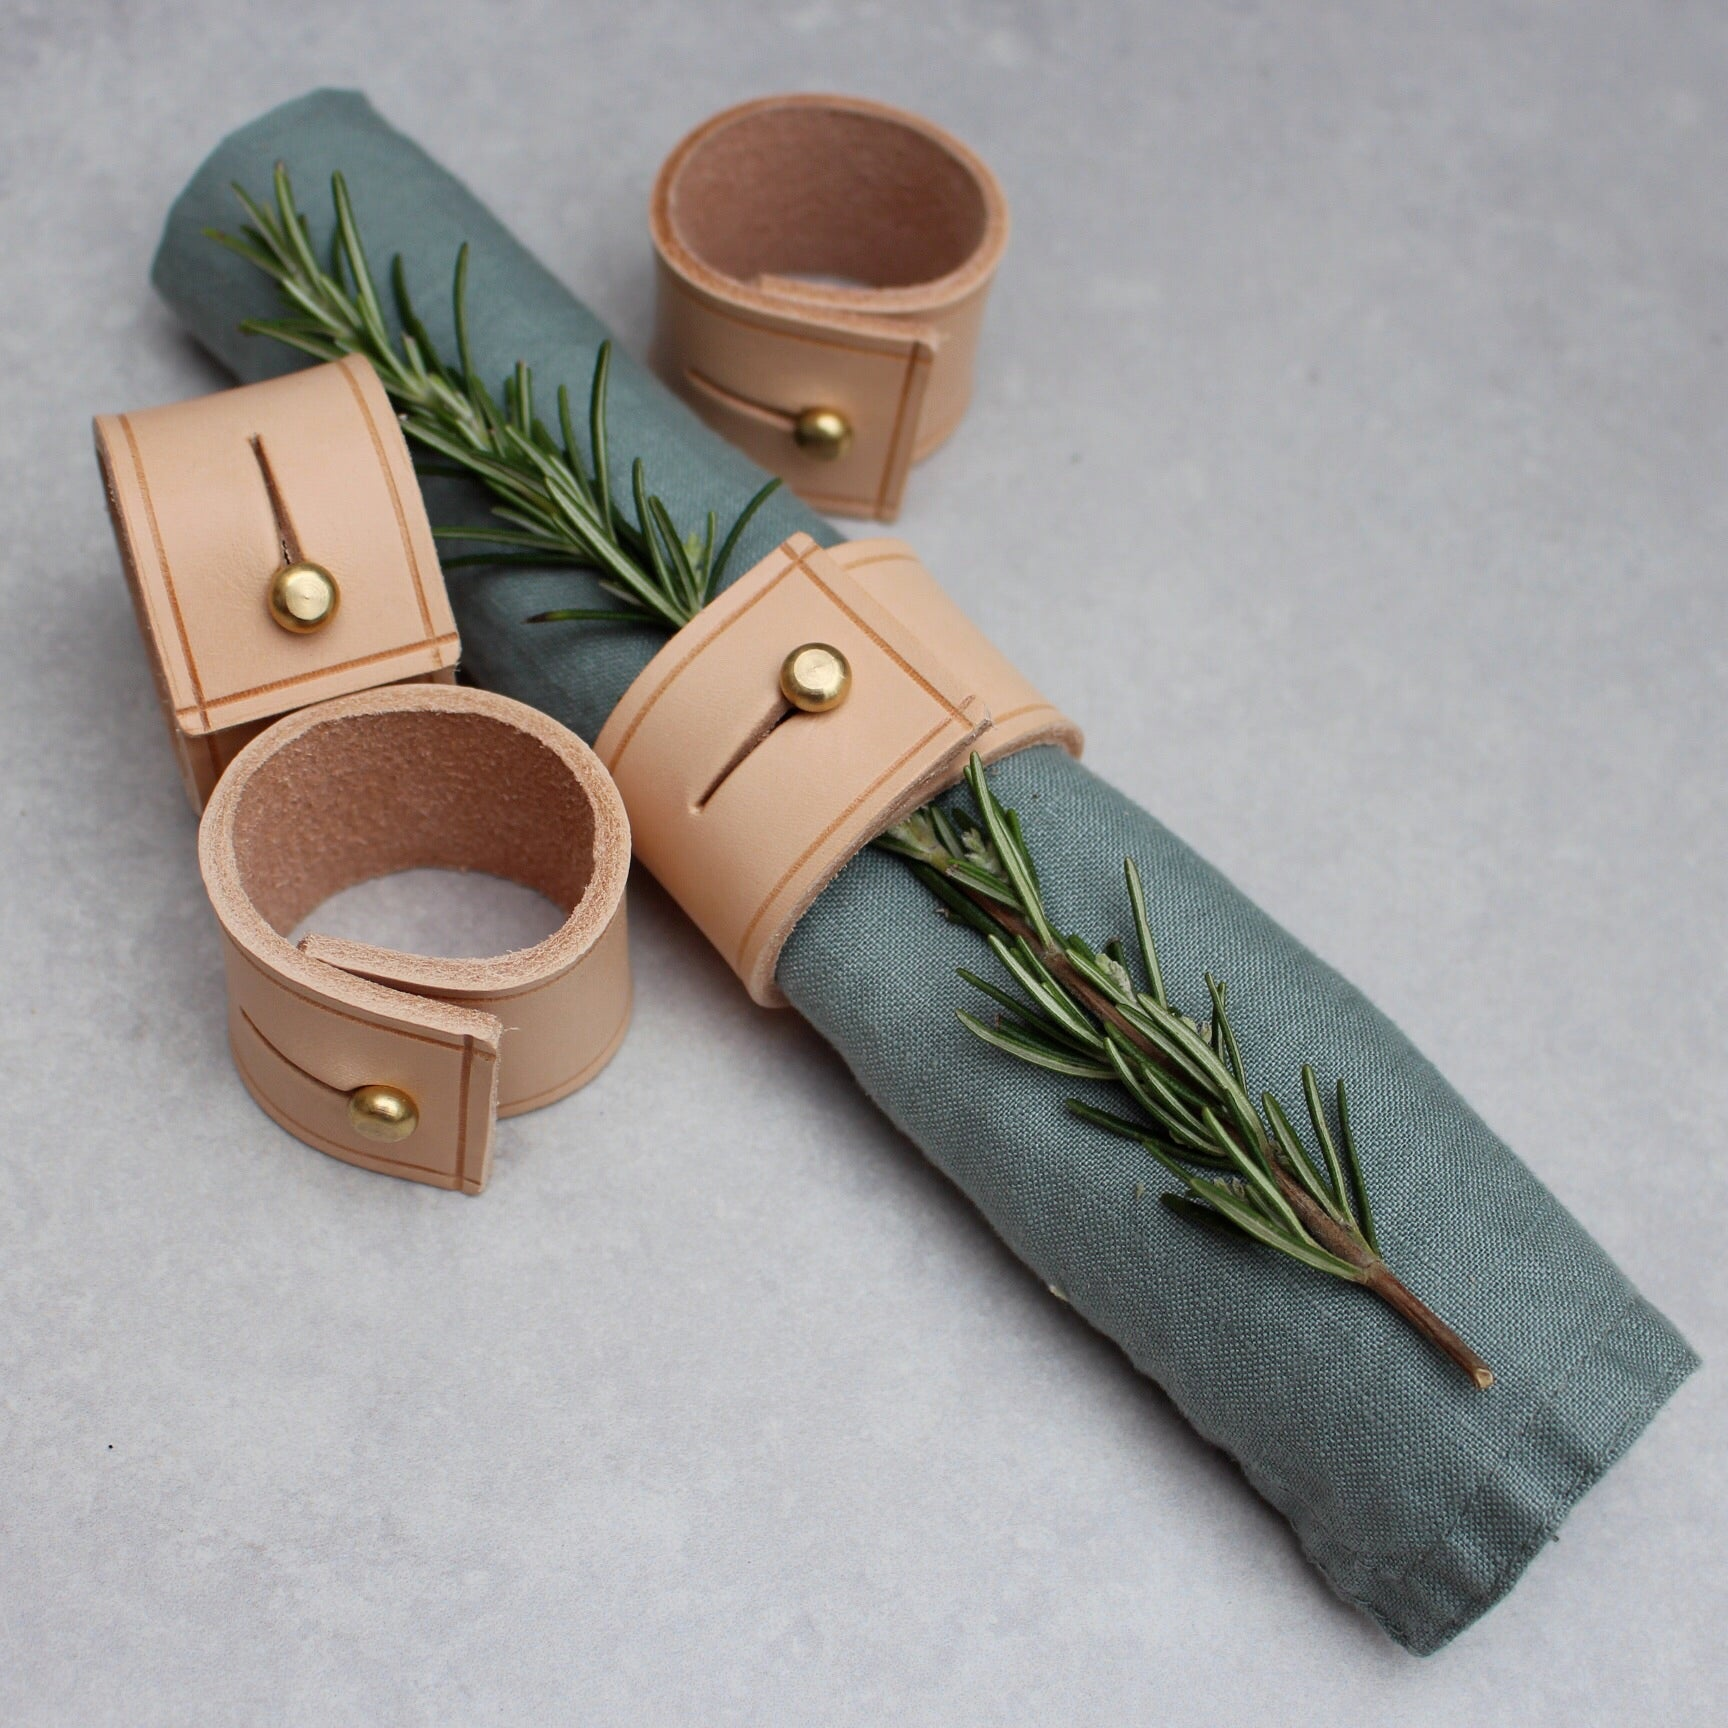 Napkin Rings - Natural leather